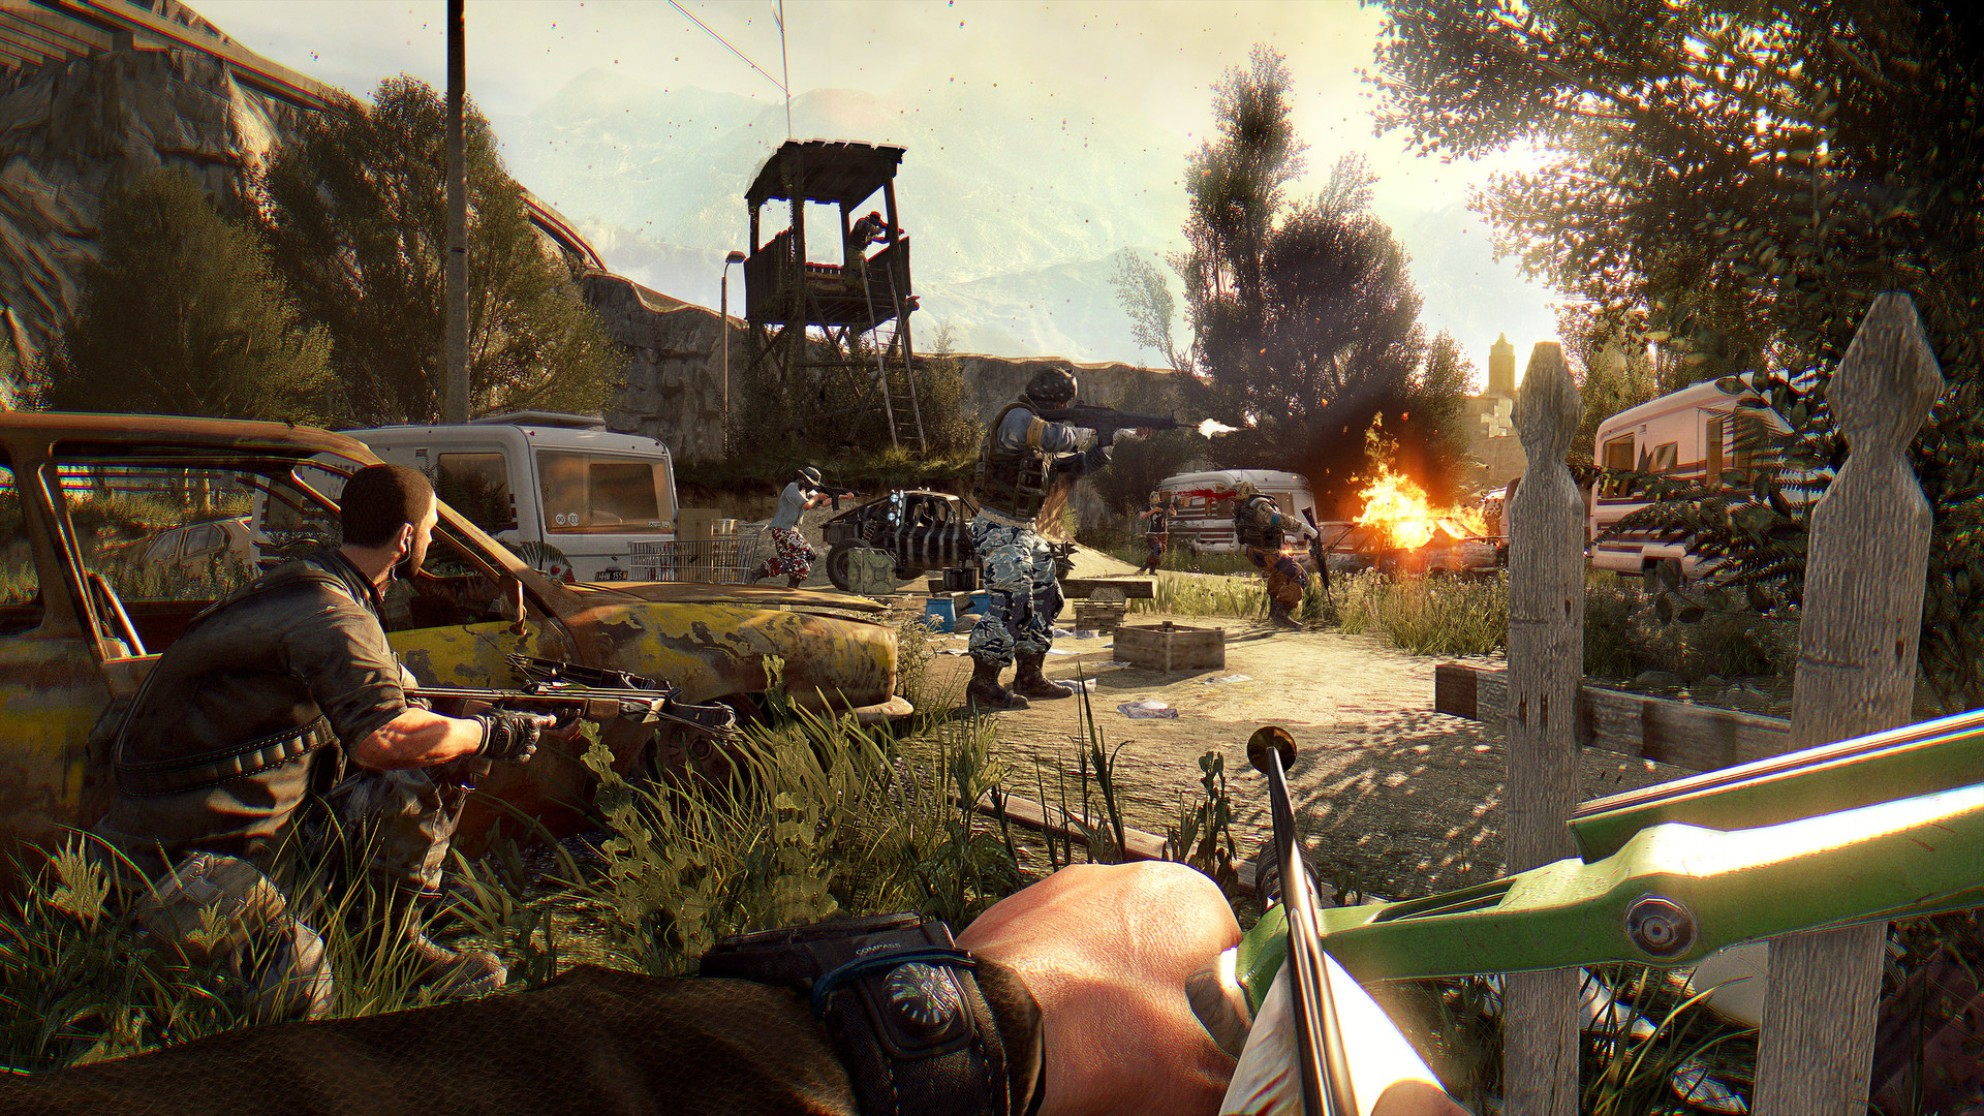 Dying light best weapon locations - secret weapons guide